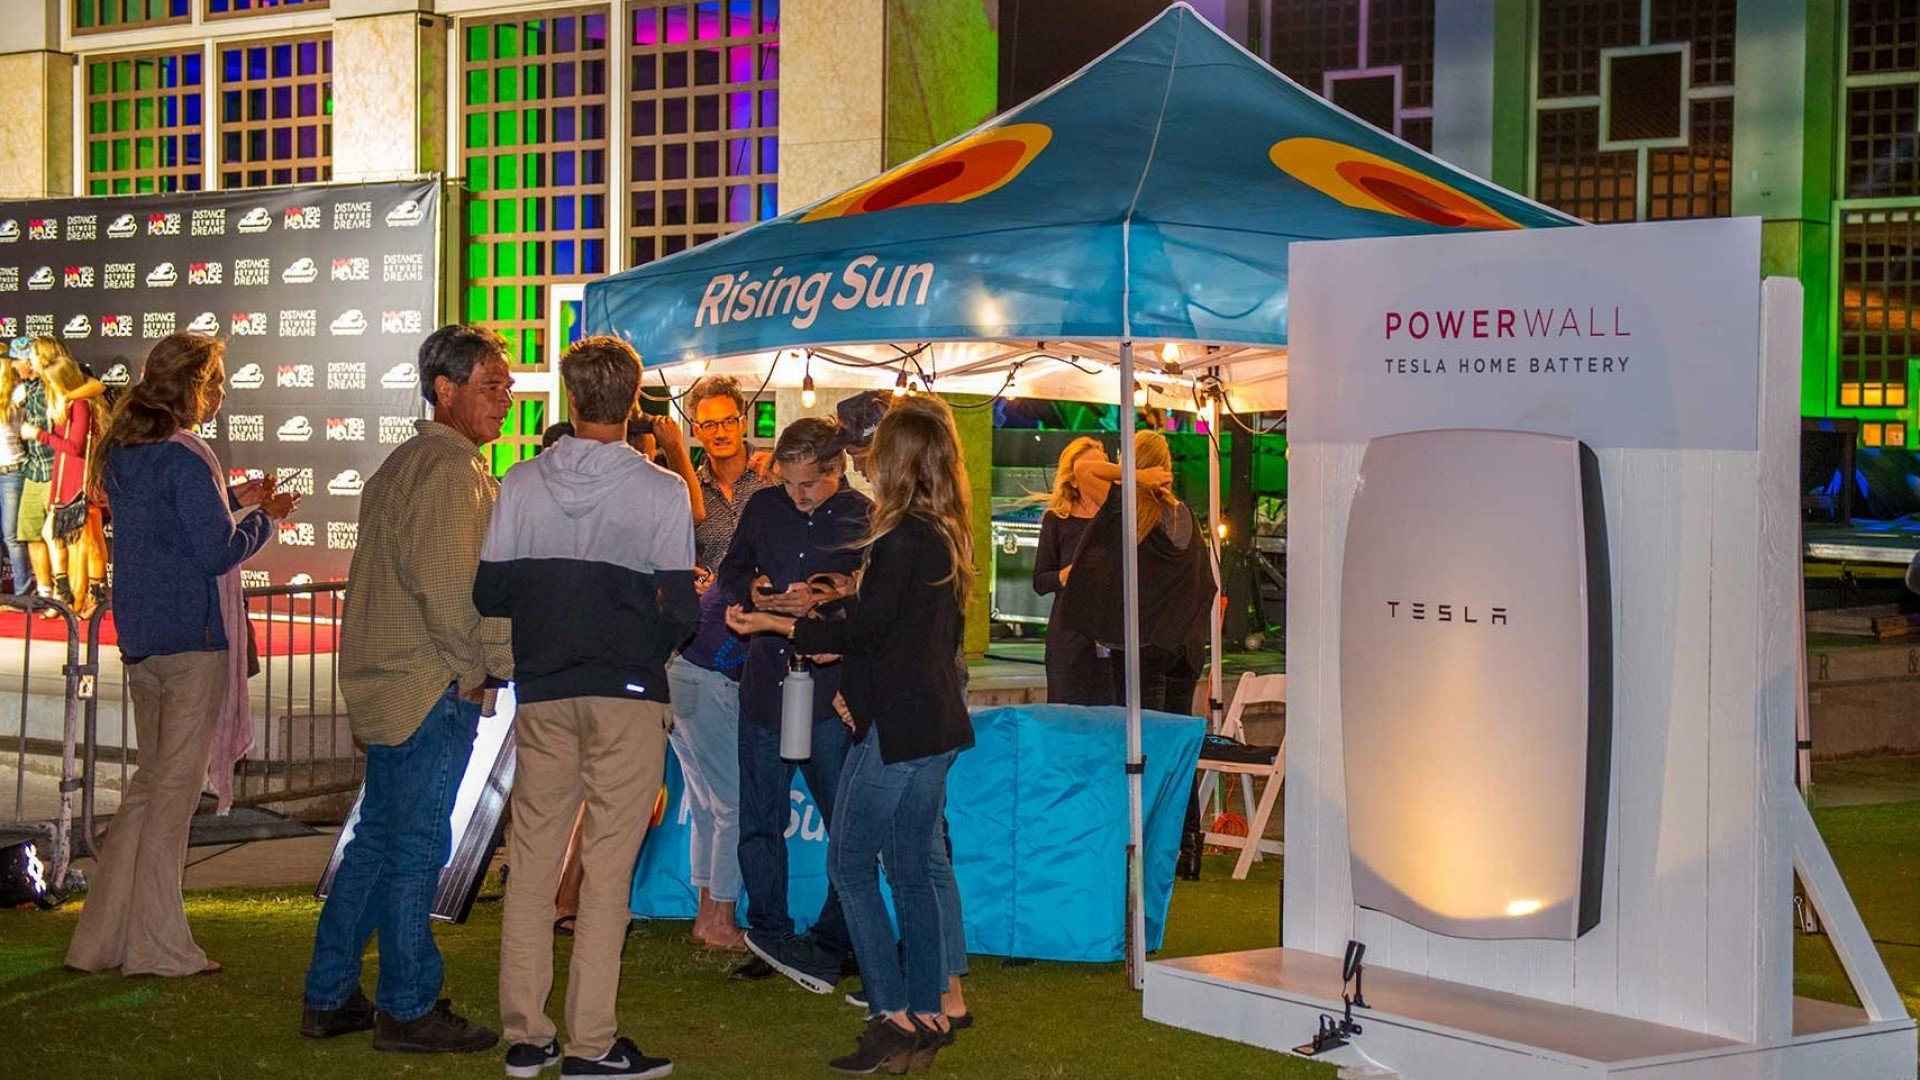 rising sun solar powerwall giveaway booth with people standing out front